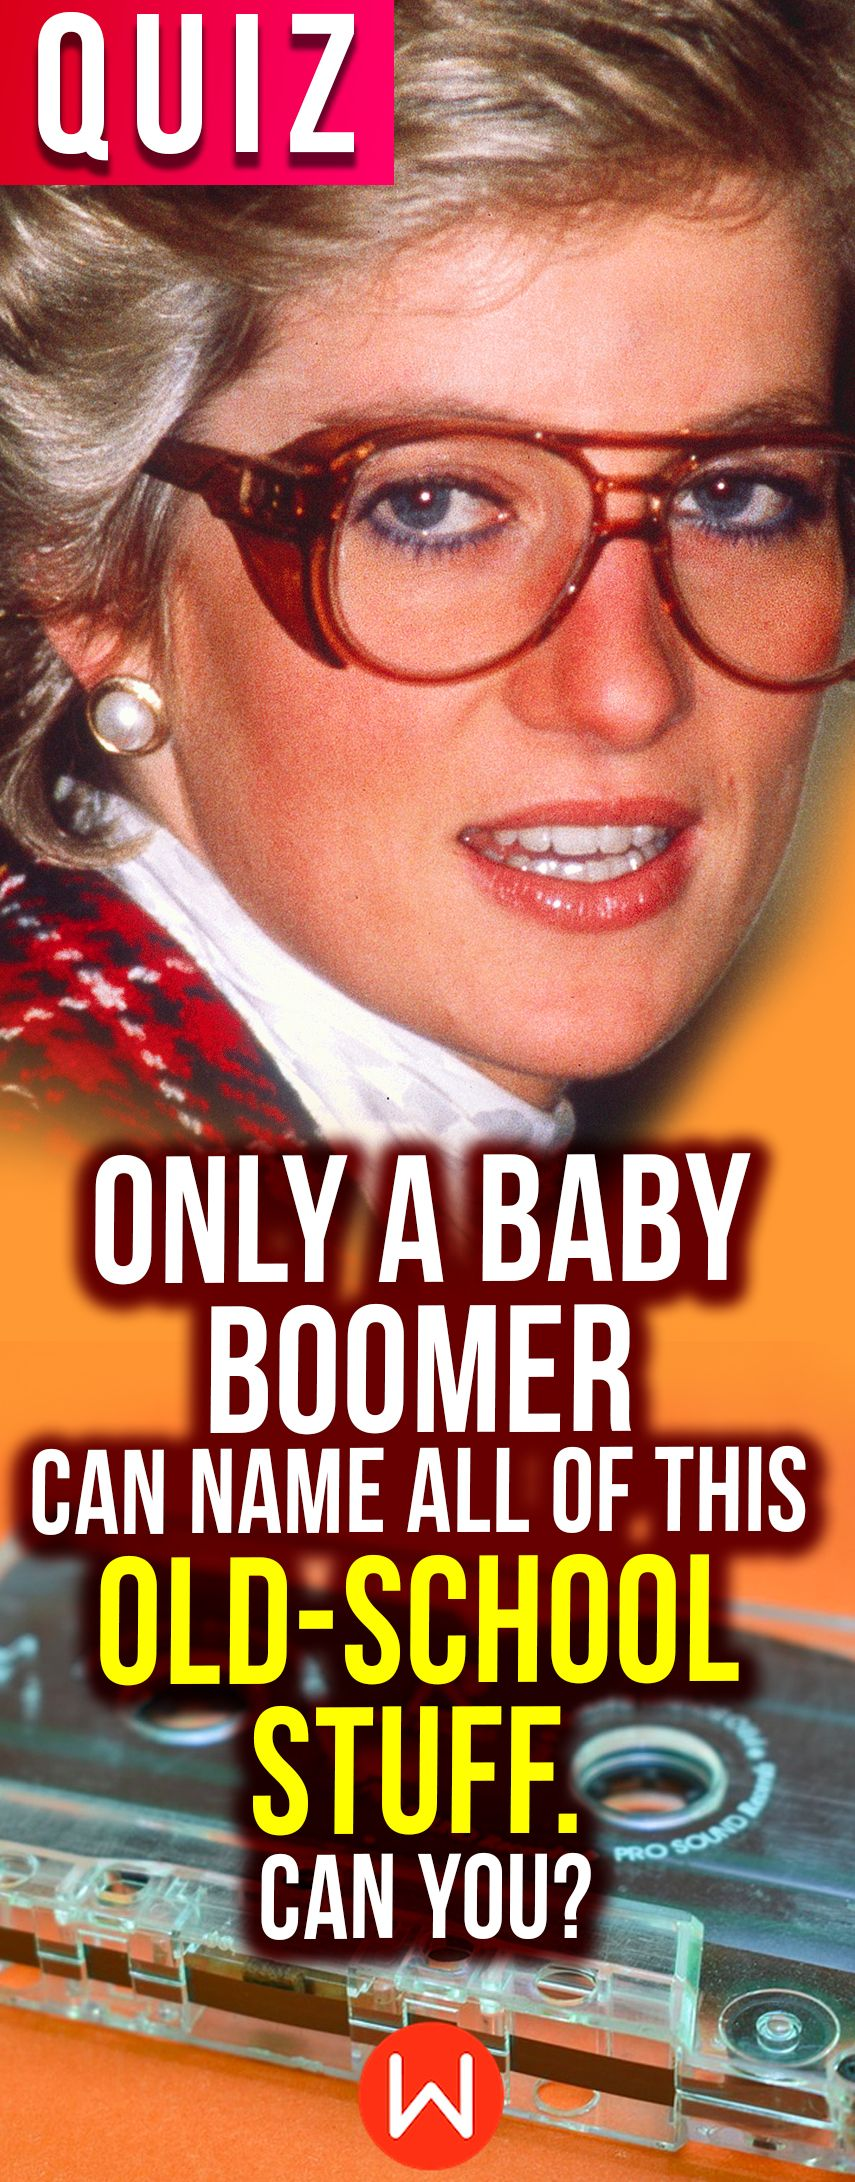 Quiz: Only A Baby Boomer Can Name All Of This Old-School